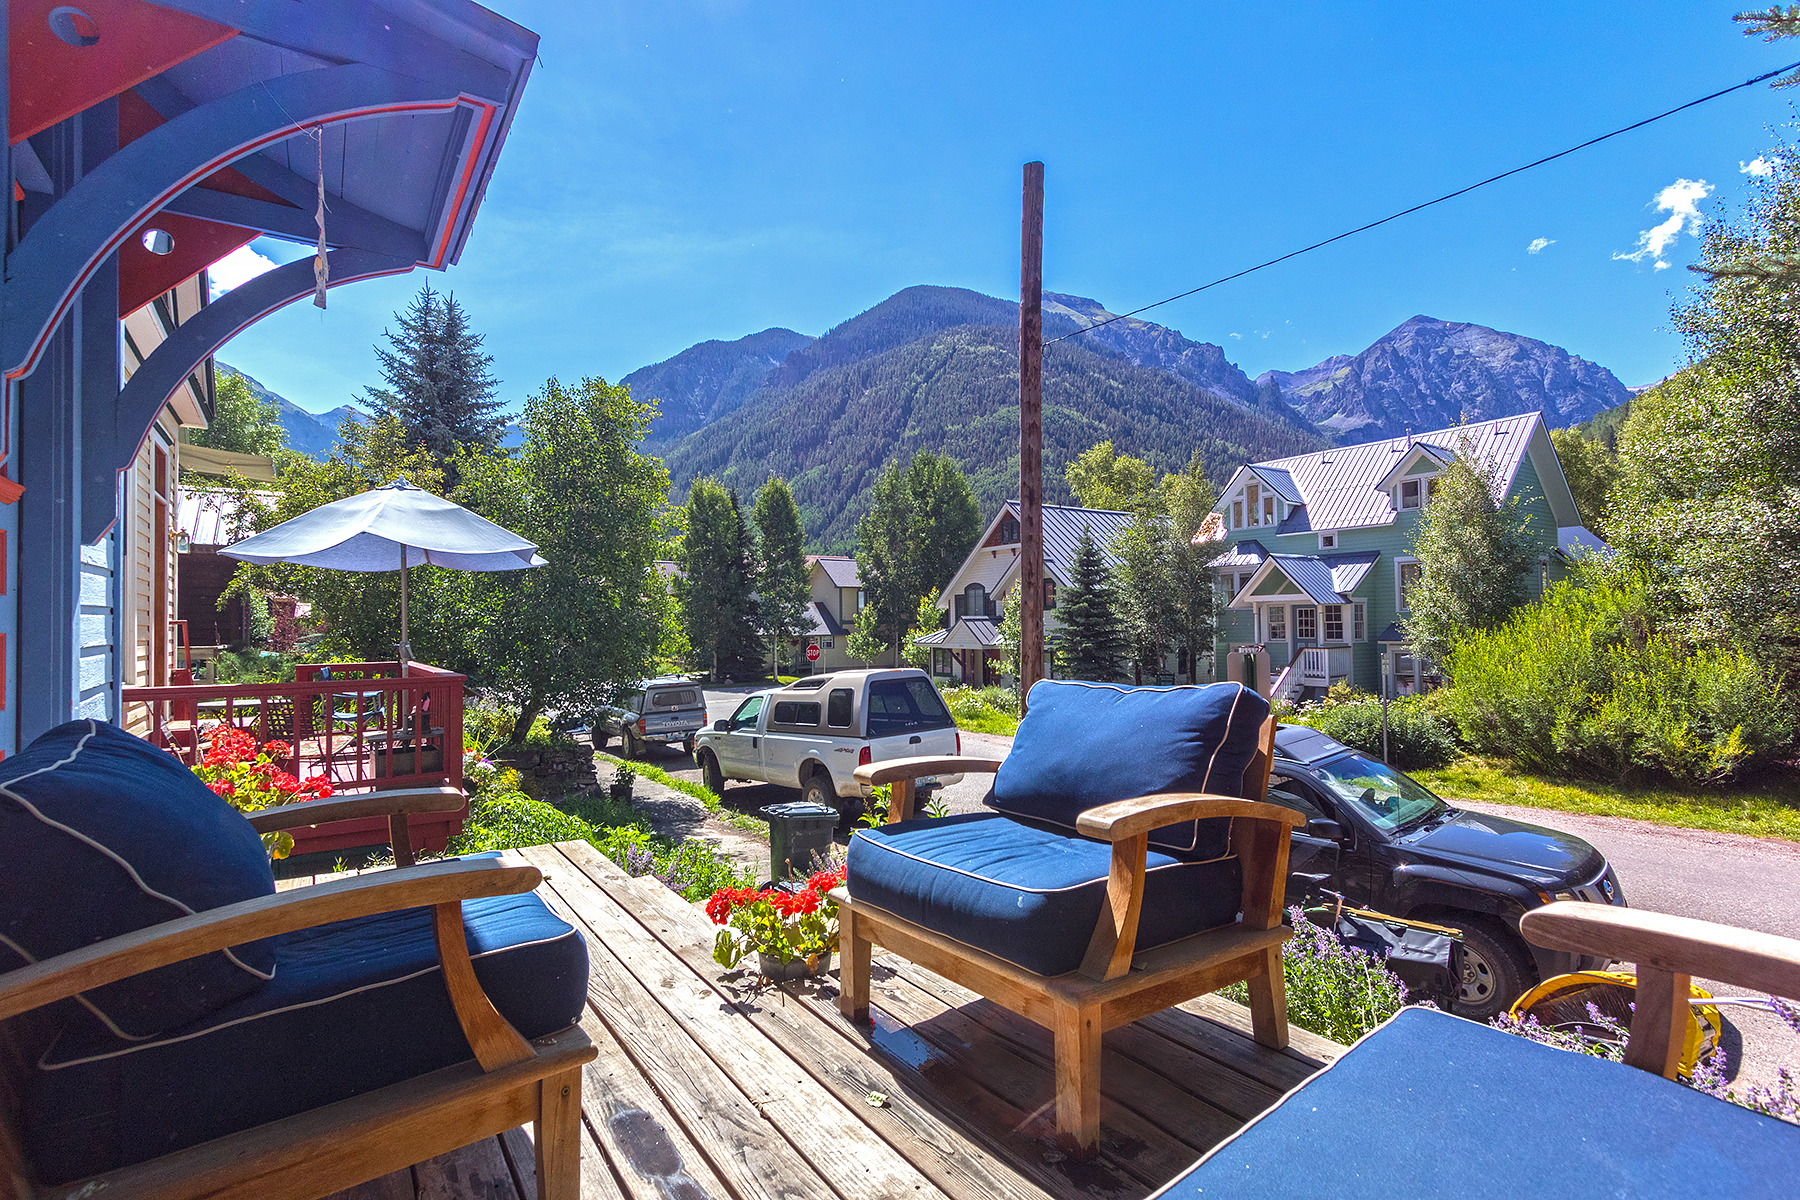 Single Family Home for Sale at 421 E. Columbia Avenue Telluride, Colorado, 81435 United States